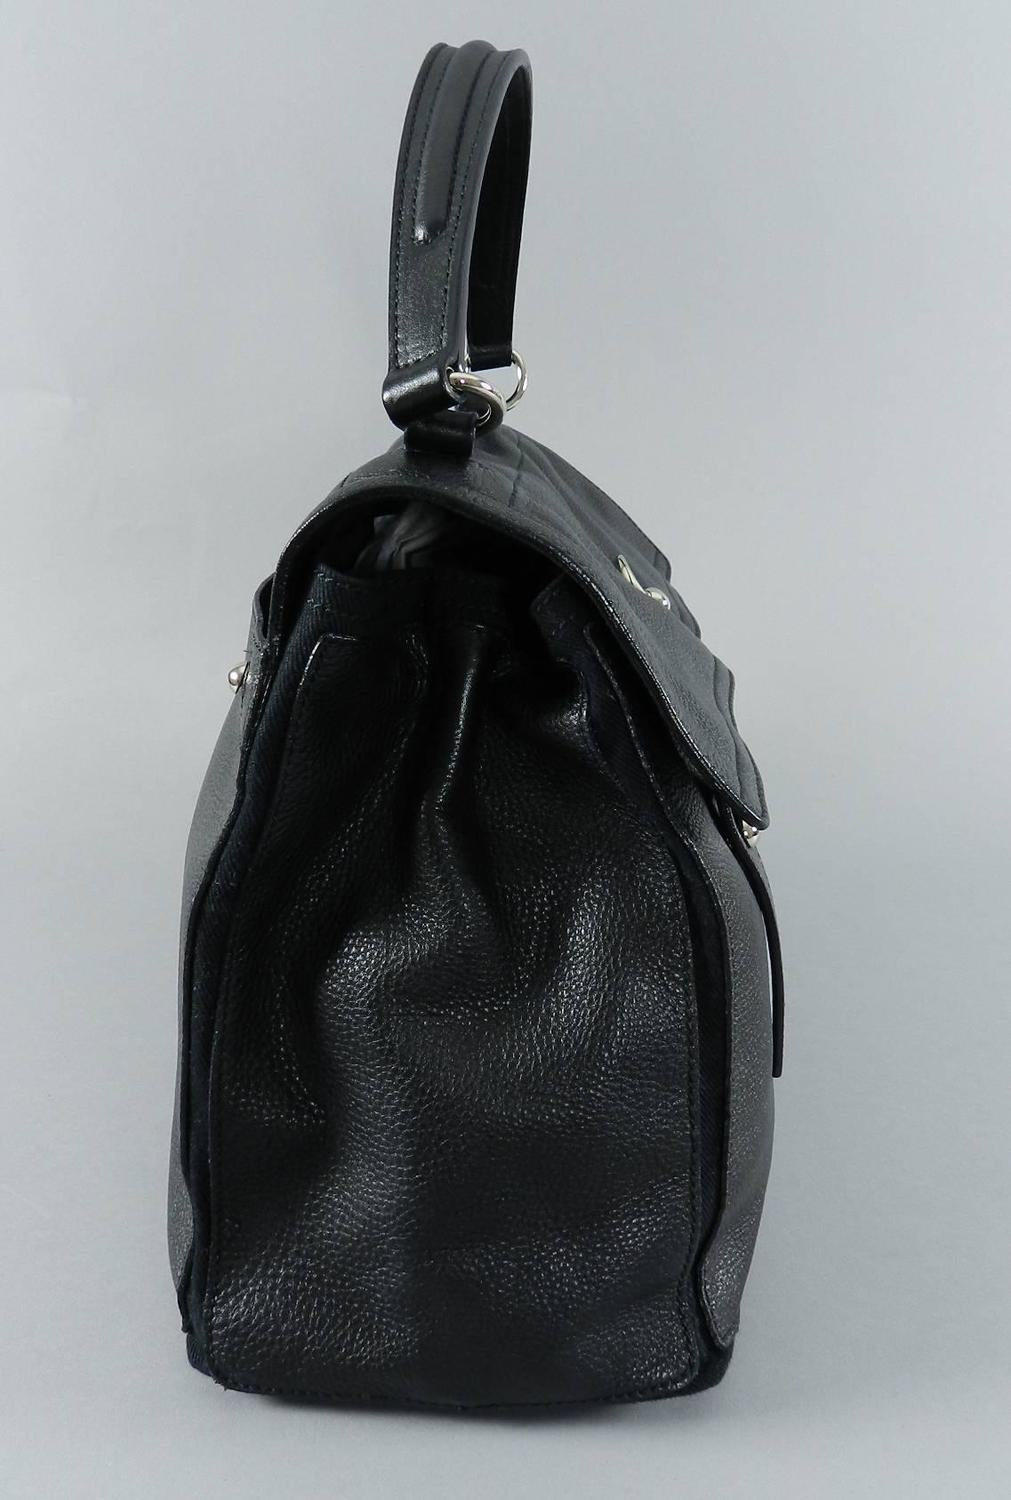 YSL Yves Saint Laurent Muse Two 2 Black Bag / Purse at 1stdibs